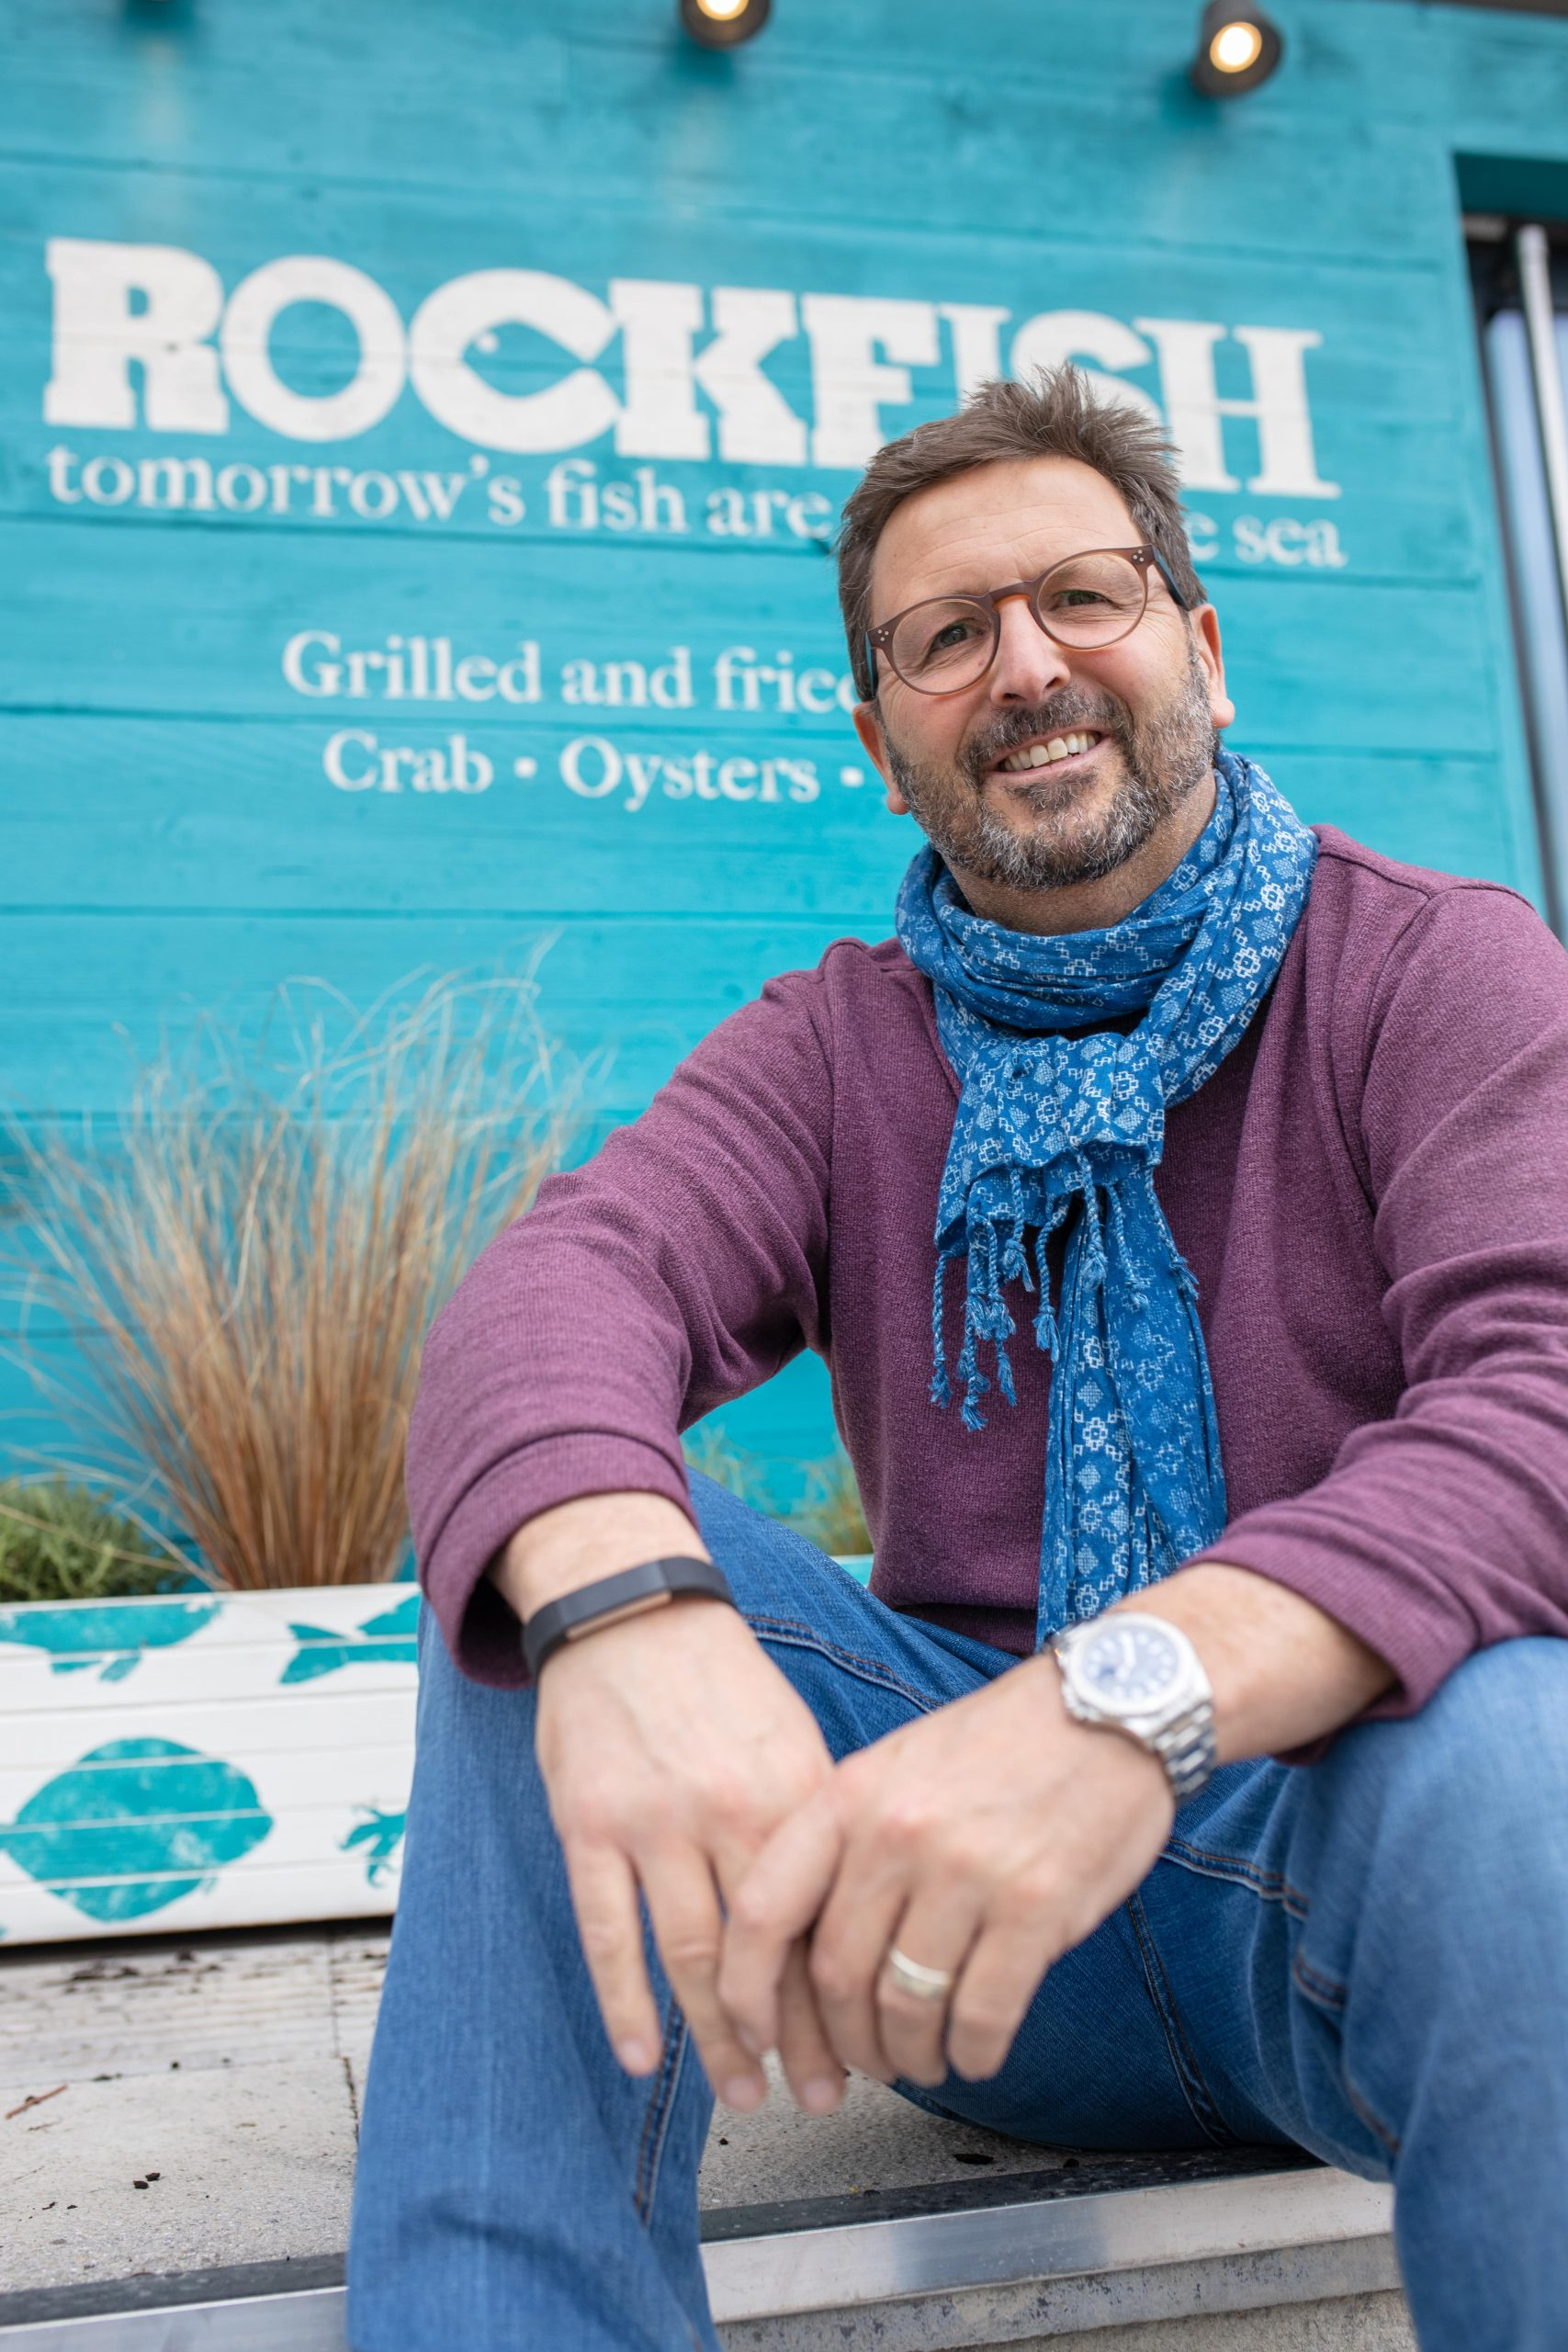 Rockfish owner Mitch Tonks says he is looking forward to opening an eatery in Sidmouth.